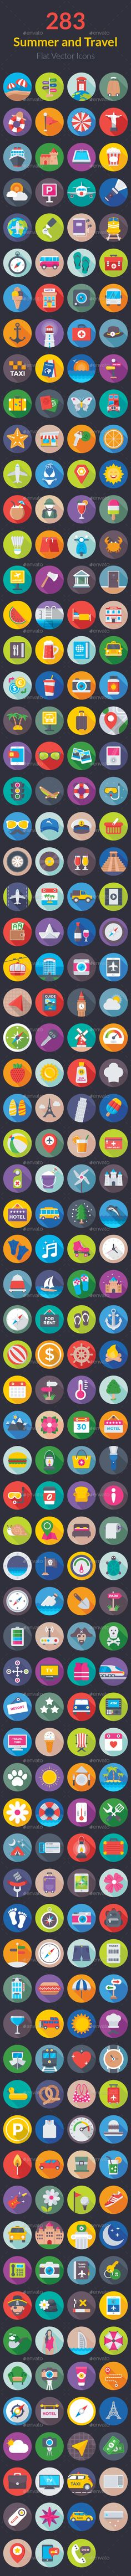 283 Summer and Travel Flat Icons — Vector EPS #set of travel icons #flat icons • Available here ➝ https://graphicriver.net/item/283-summer-and-travel-flat-icons/20727421?ref=pxcr